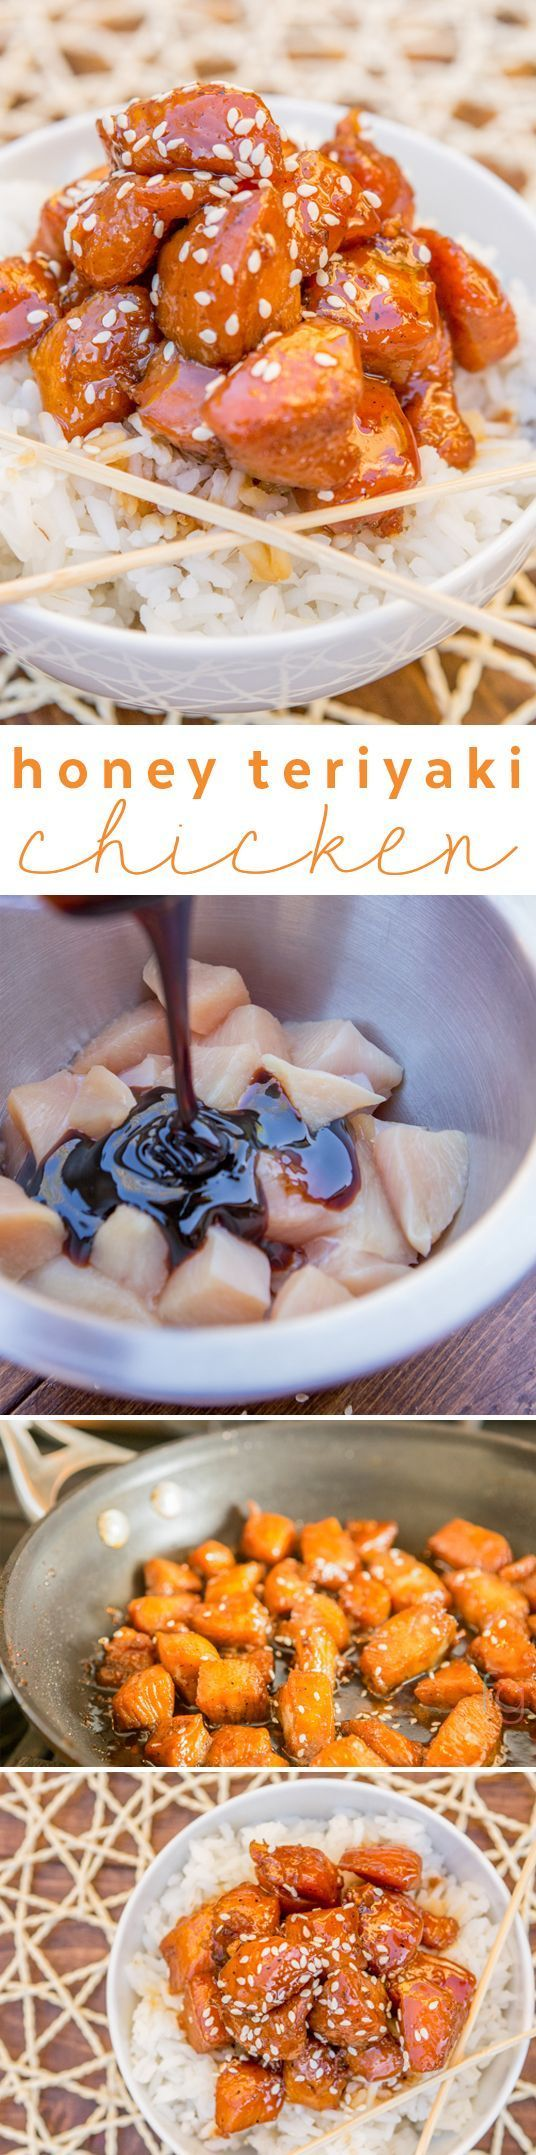 Quick easy dinner recipe dinner ideas easy recipe 30 minute quick easy dinner recipe dinner ideas easy recipe 30 minute meals honey teriyaki chicken recipe takeout recipes chinese chinese food re forumfinder Gallery